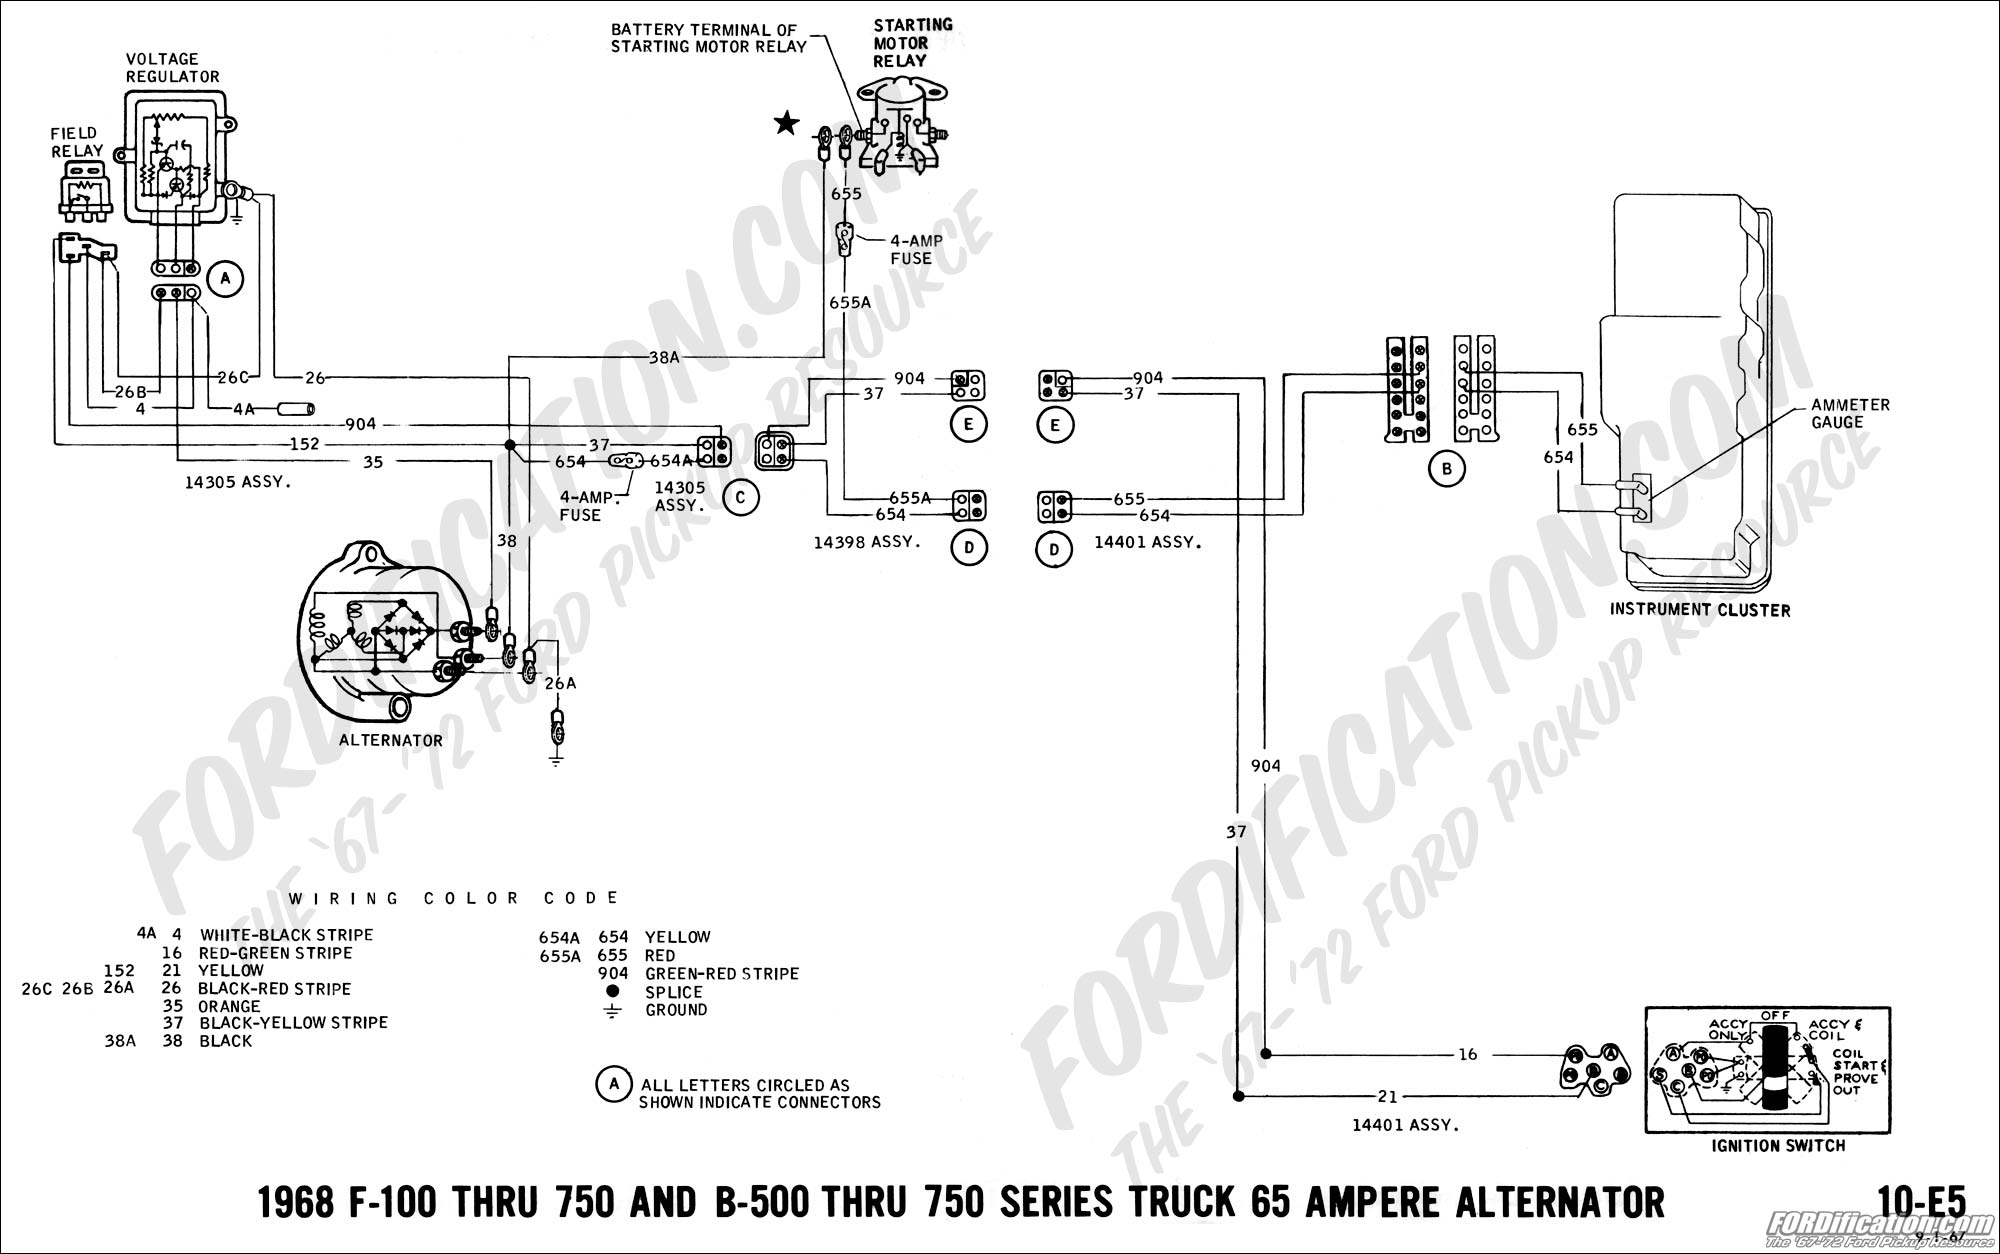 84 Chevy Steering Column Wiring Diagram also Chevy Truck Starter Wiring Diagram moreover P 0900c1528008850e together with 1981 Ford F 100 Fuse Box Diagram together with Schematics h. on 1986 gm turn signal switch